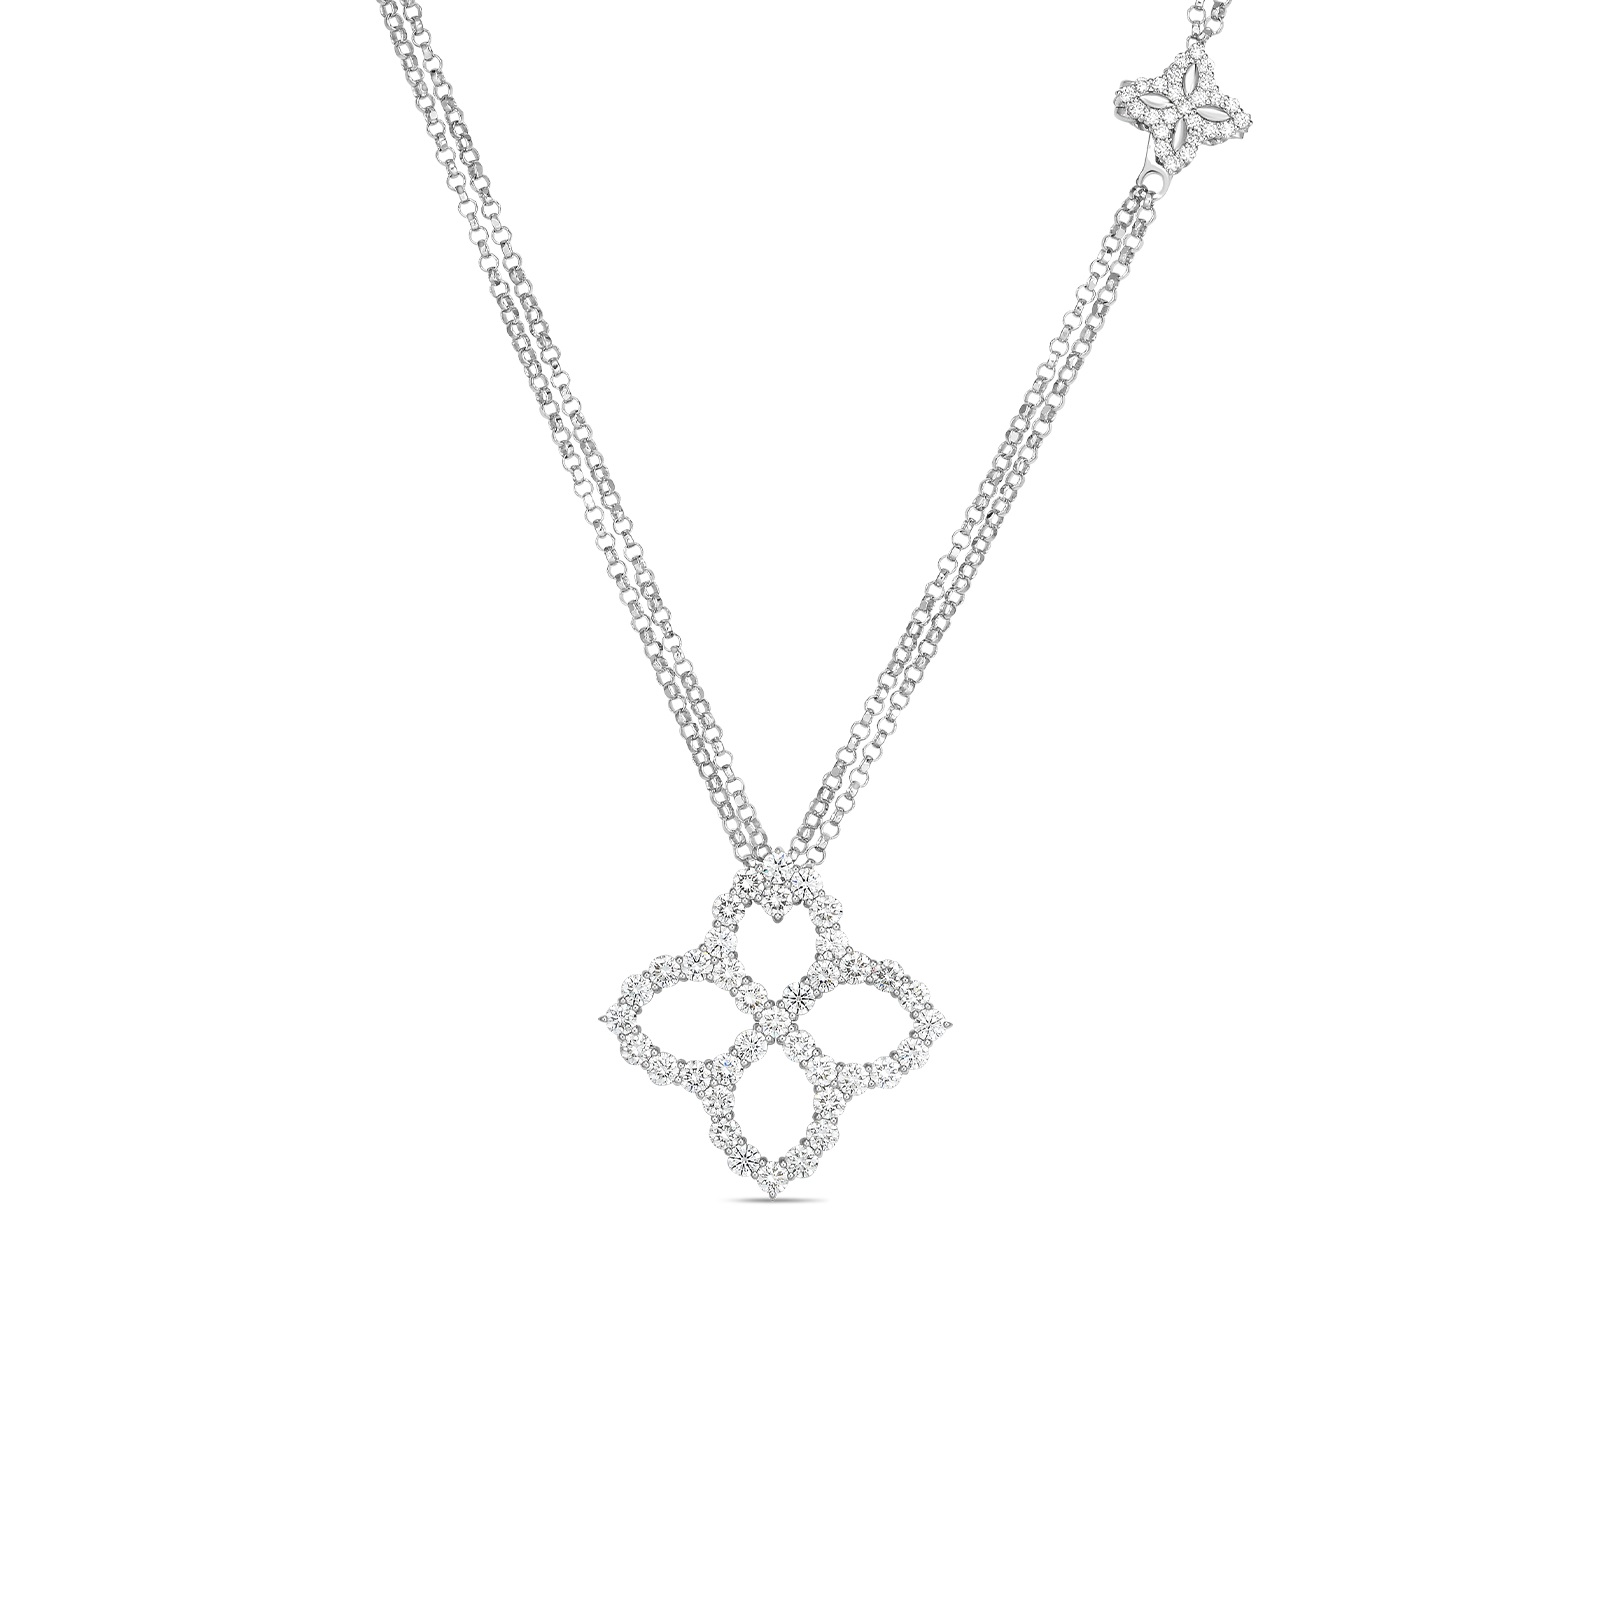 Roberto Coin 18K White Gold 2.79cts  Diamonds Gold Necklace with Stones 8882790AW33X